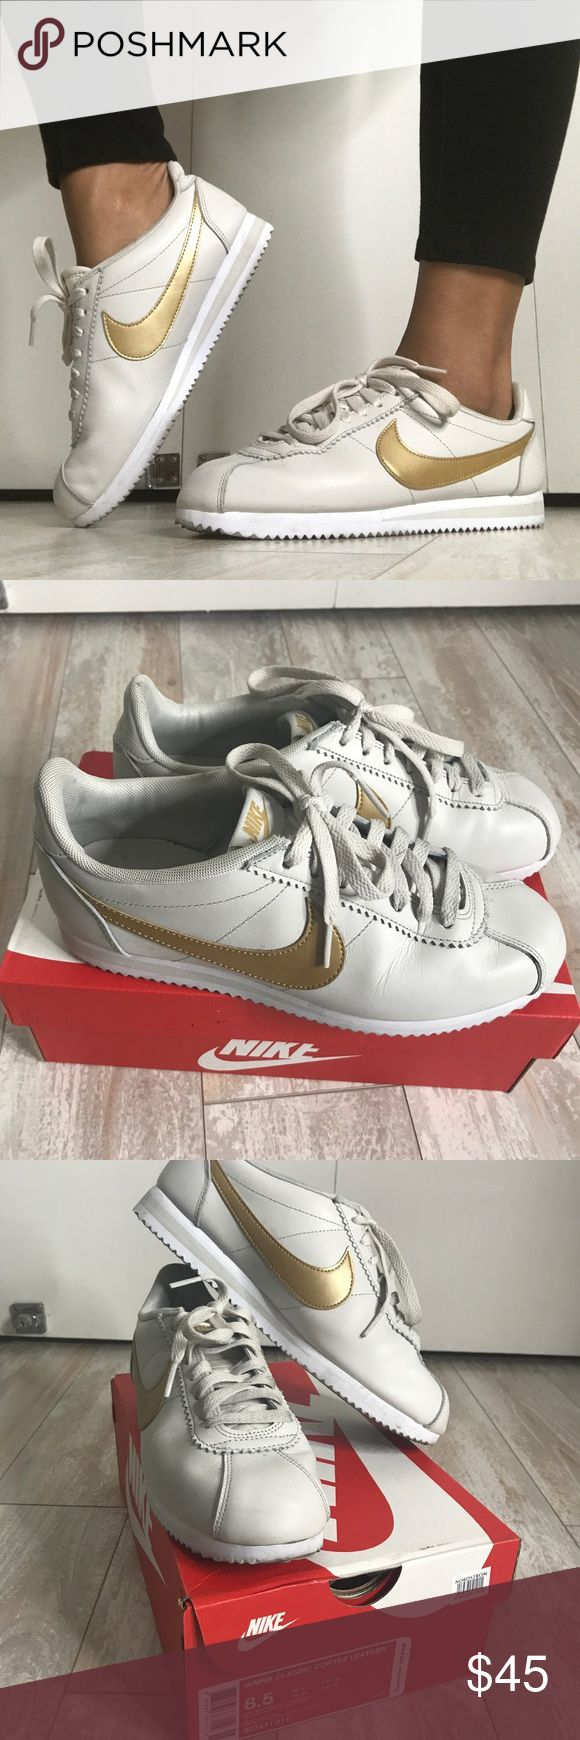 Nike Classic Cortez Sneaker Bone color with gold signature Nike Swoosh, chevron-tread rubber sole, leather upper sole, true to size, worn once and in nearly perfect condition with original shoe box Nike Shoes Sneakers